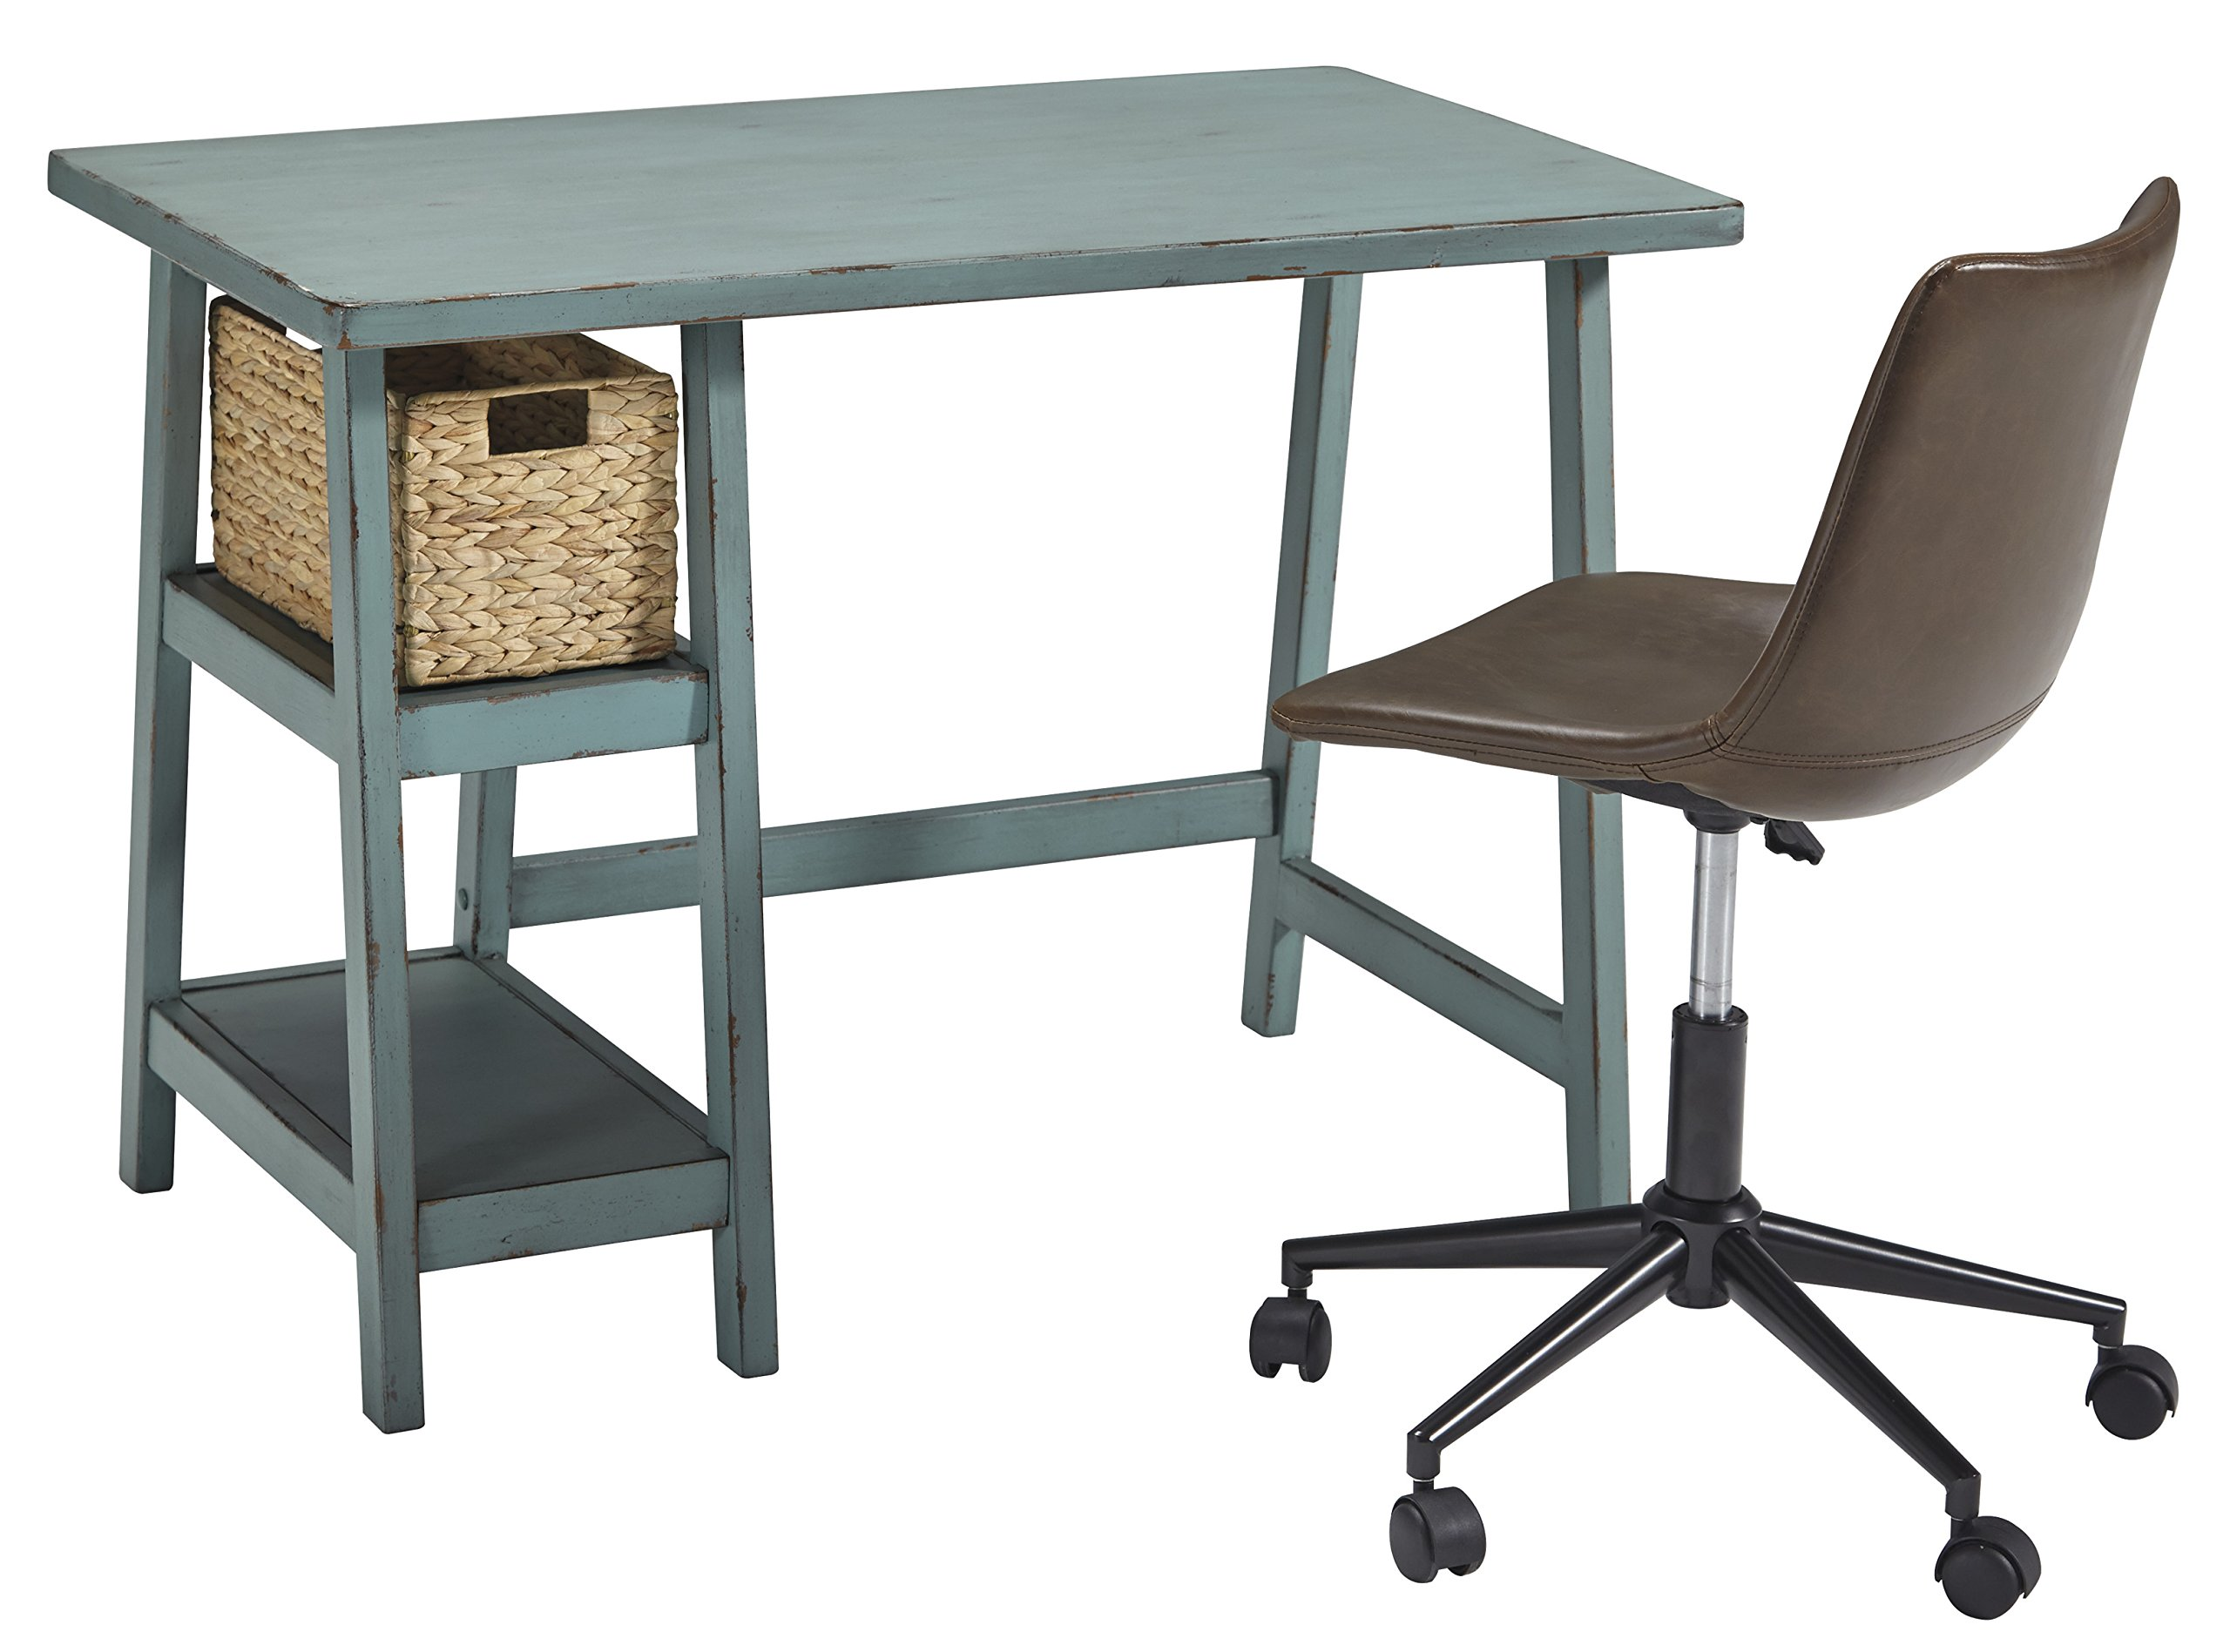 Ashley Furniture Signature Design - Mirimyn Small Home Office Desk - 2 Shelves - Includes Brown Basket - Distressed Antique Teal by Signature Design by Ashley (Image #2)